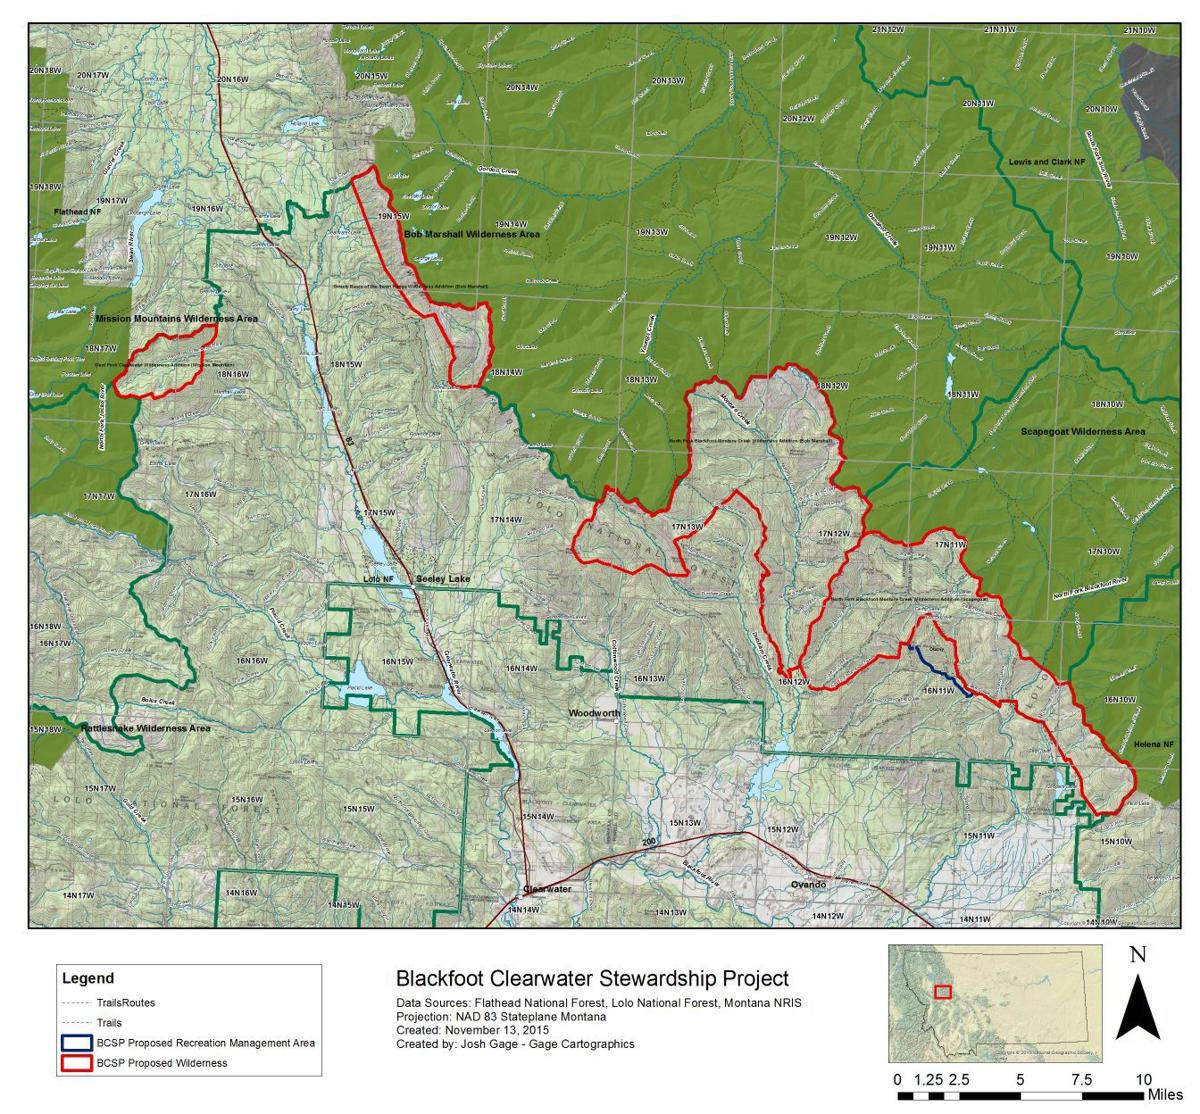 Blackfoot-Clearwater Stewardship Project map